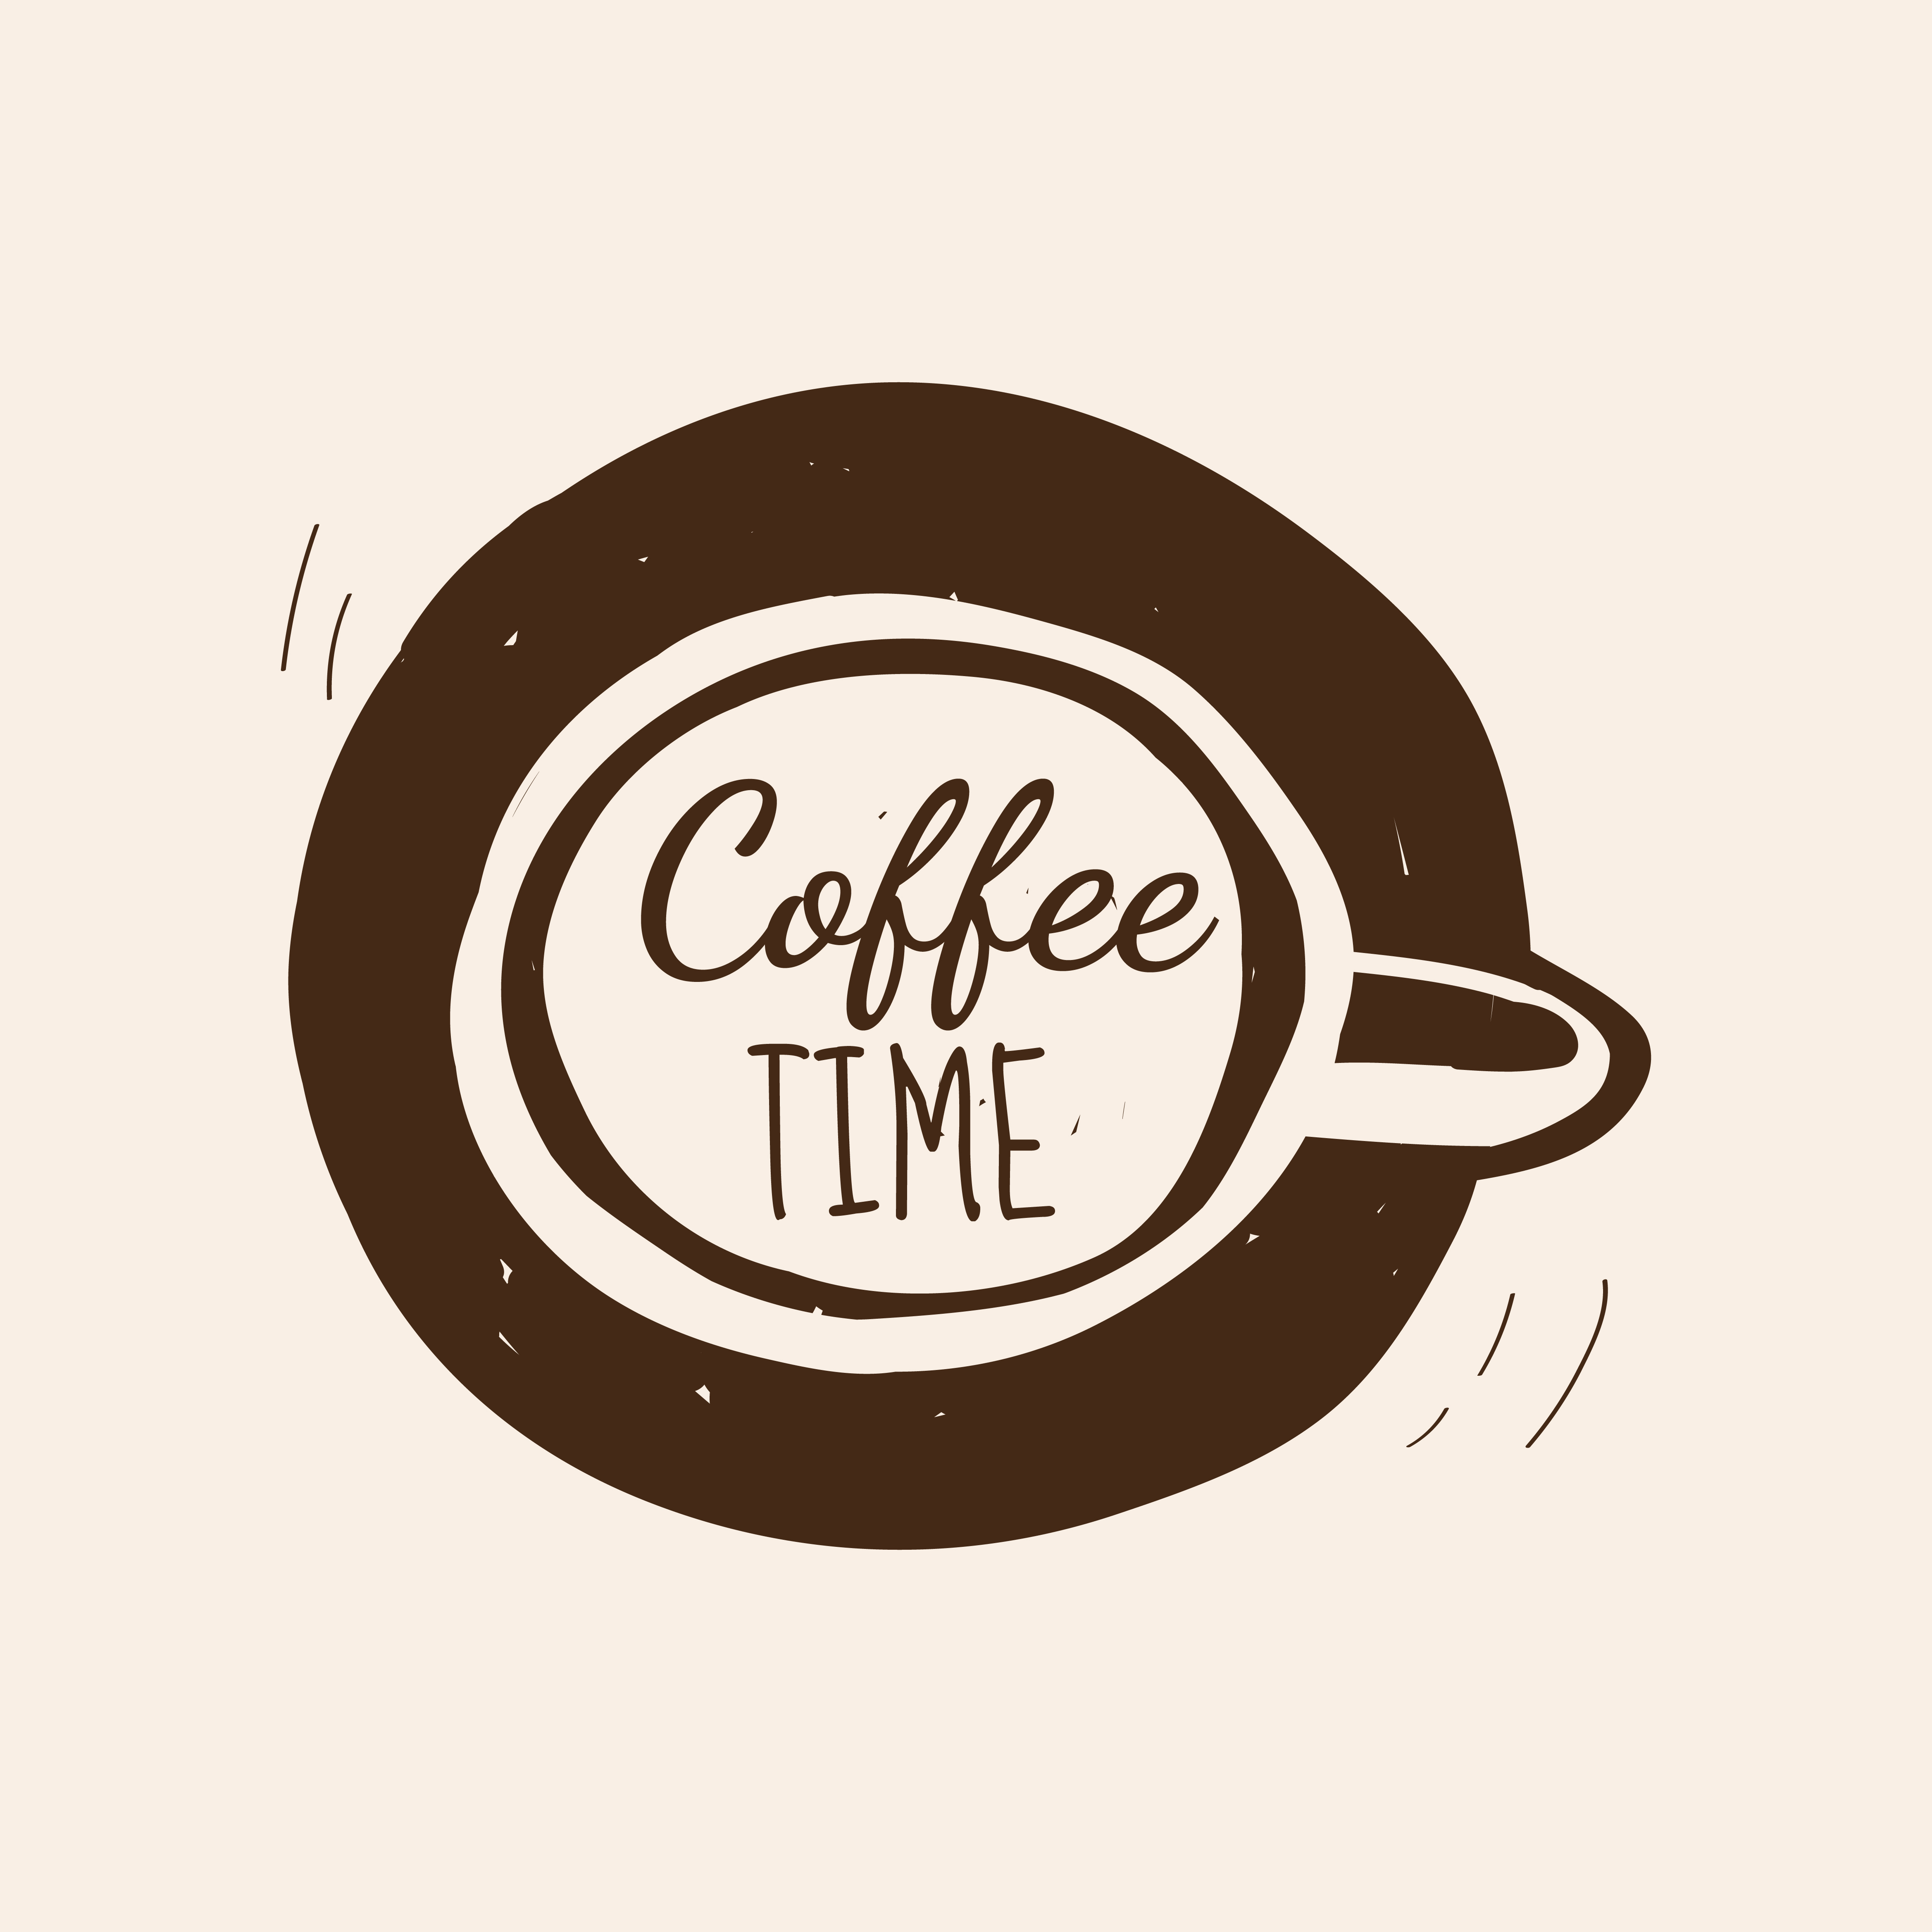 Coffee time cafe logo vector - Download Free Vectors ...